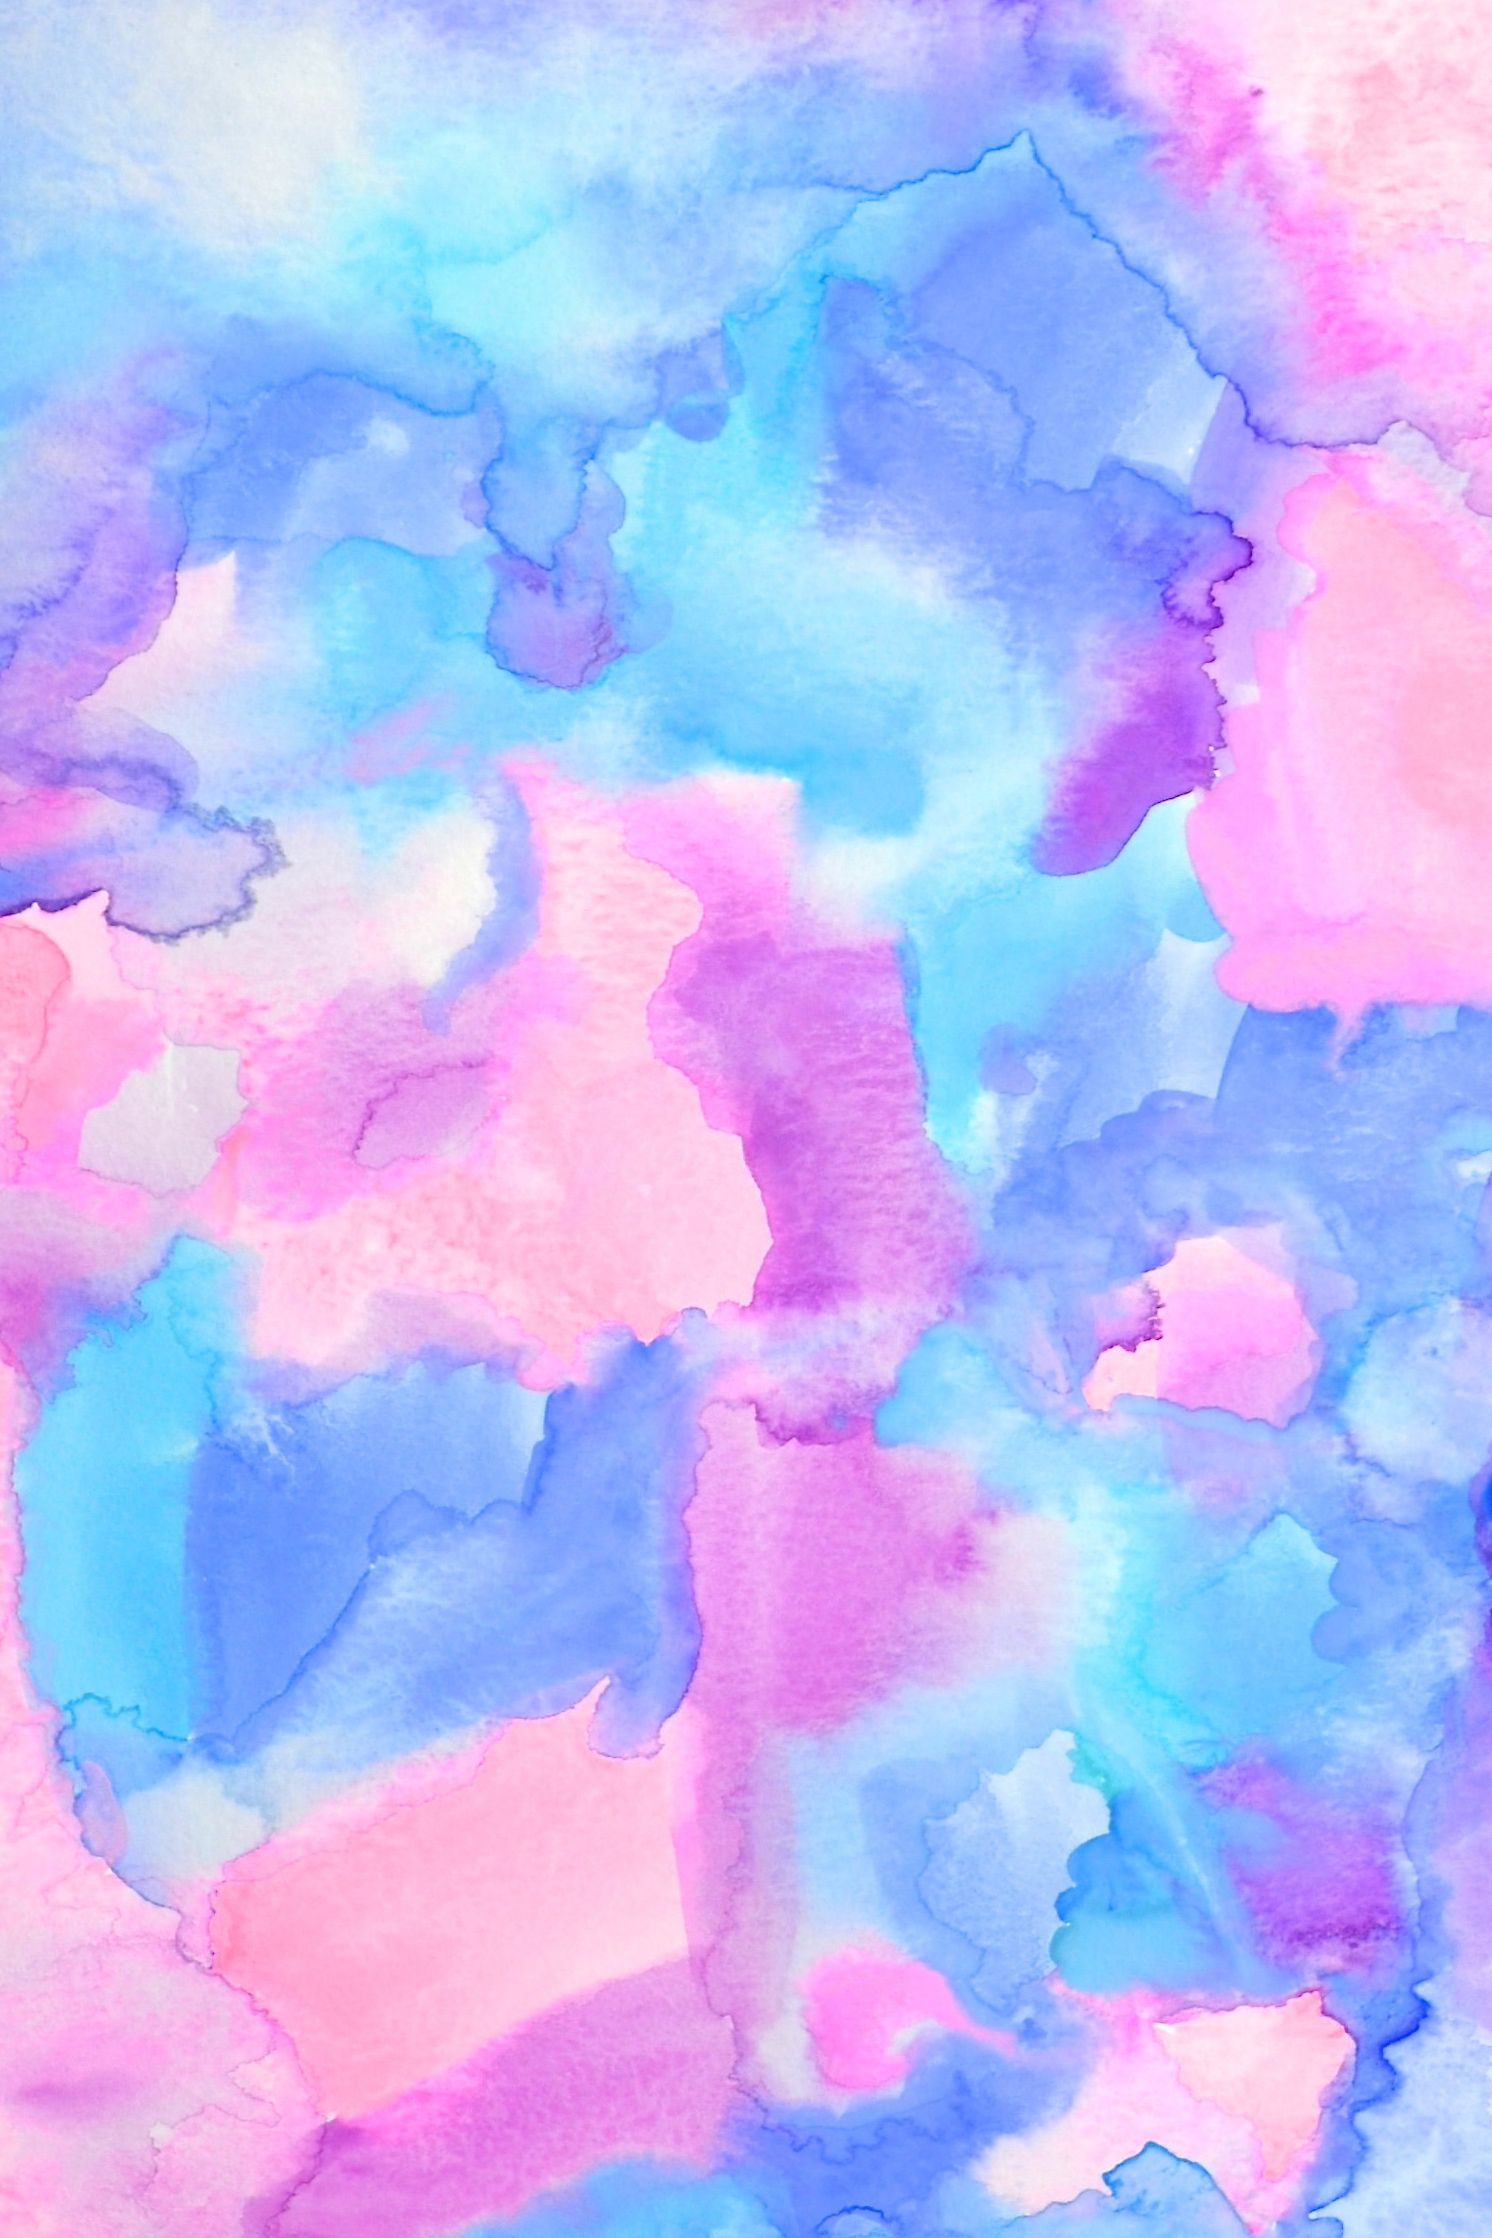 Ambrosia Watercolor Download Wallpaper Fofos Tumblr Wallpaper